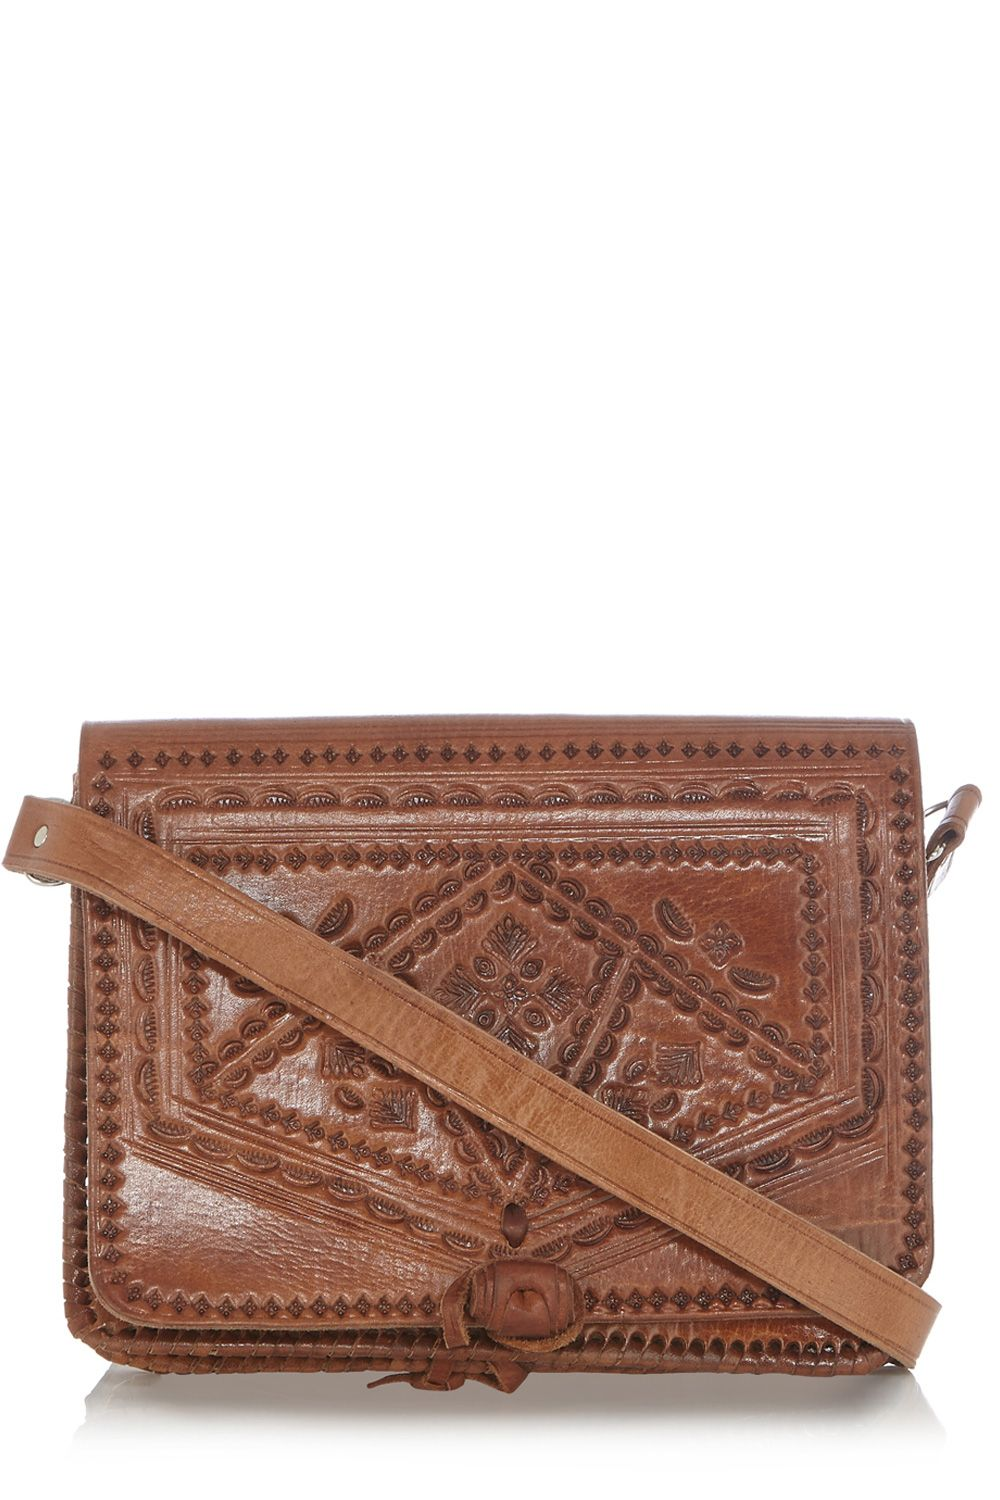 Tooled leather satchel bag